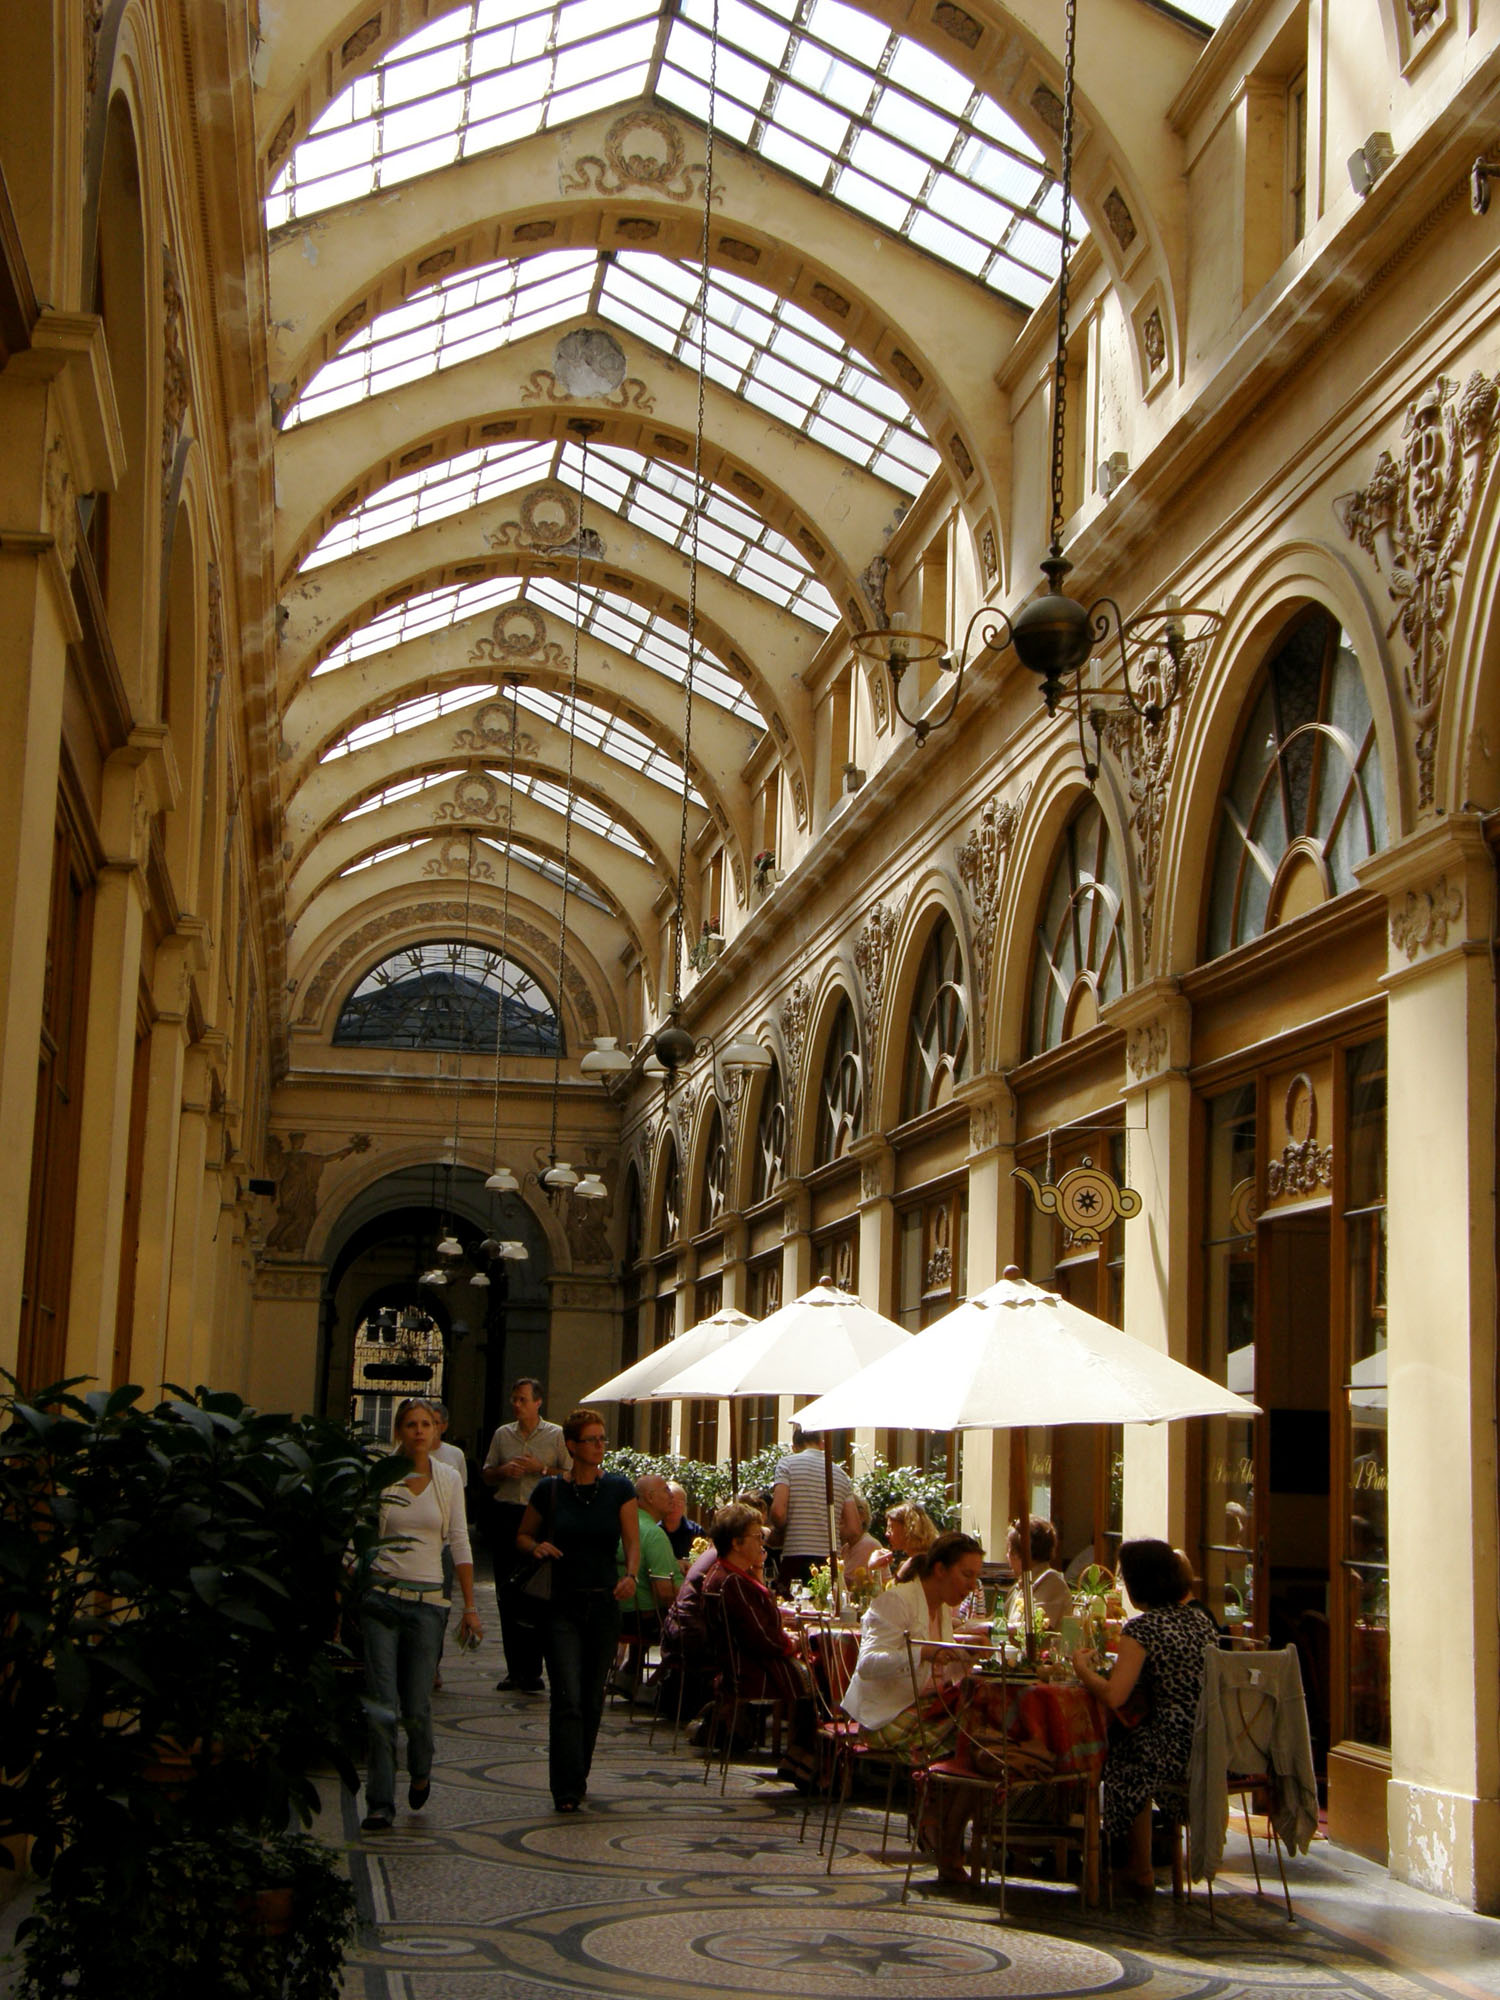 Passage des Panoramas | Around and About with Viv